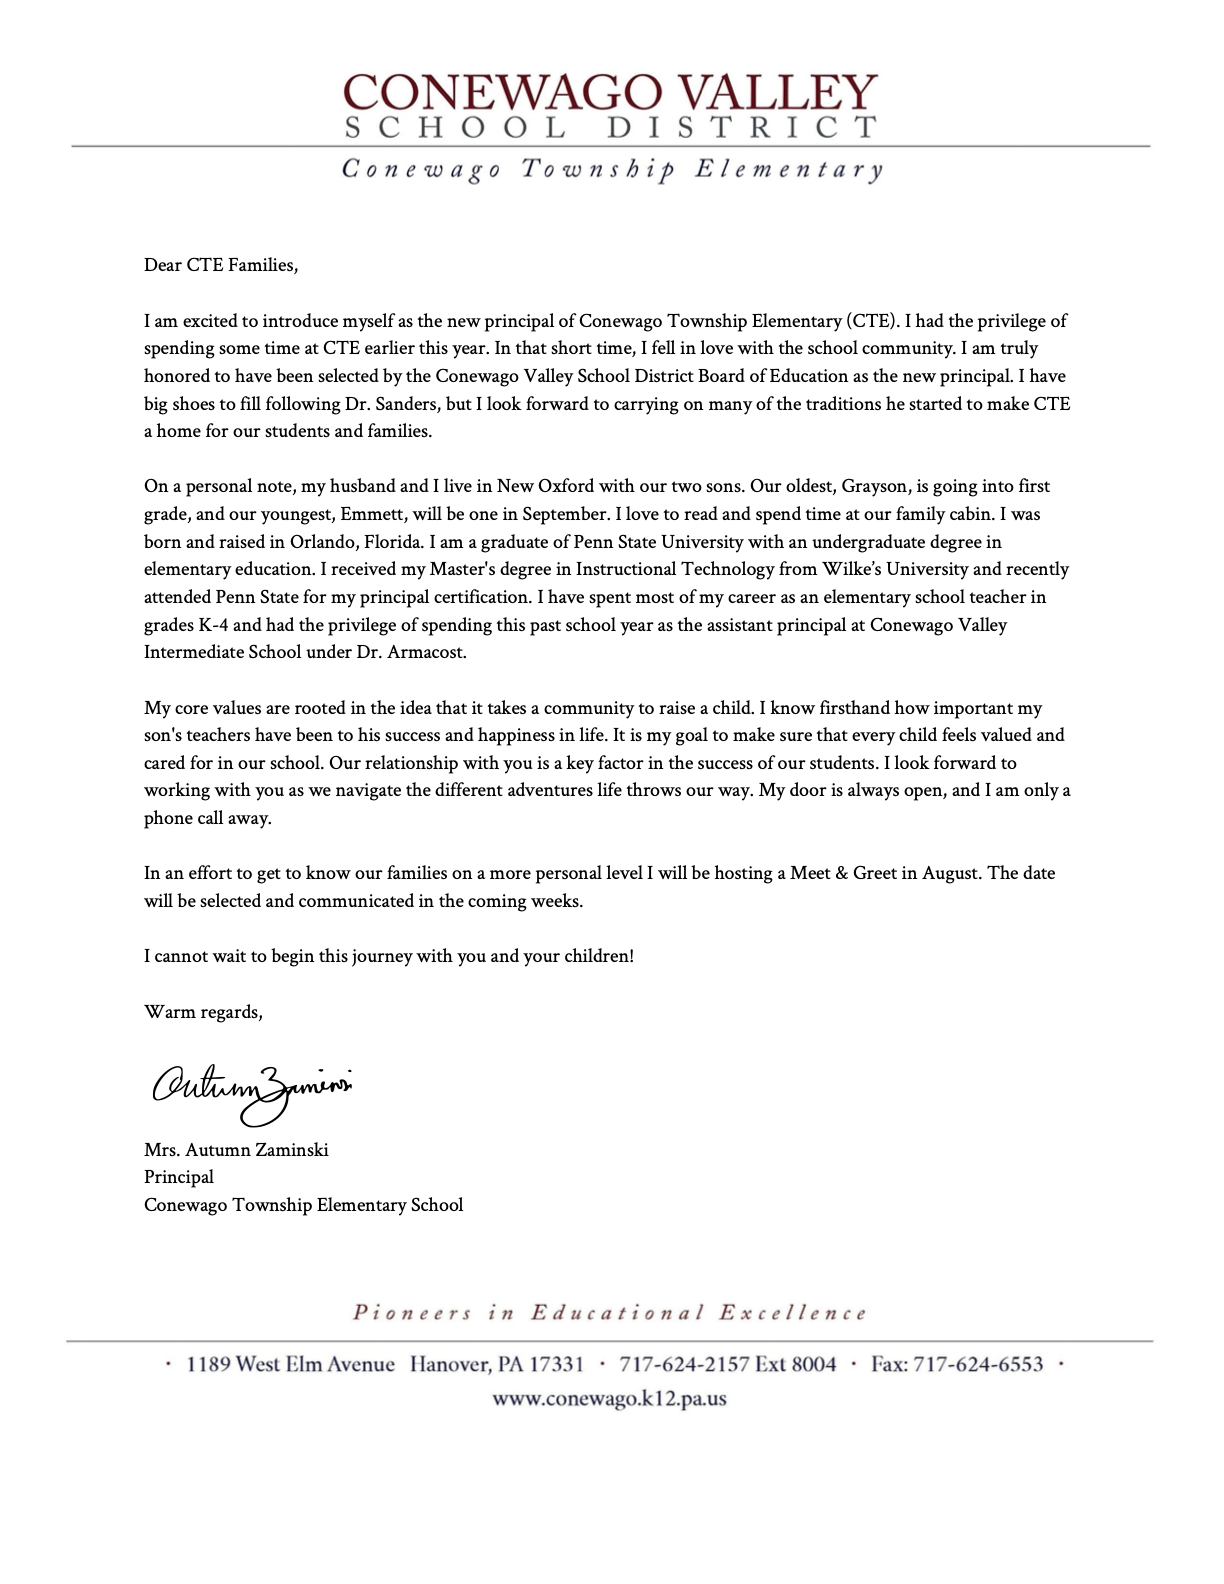 Letter to CTE